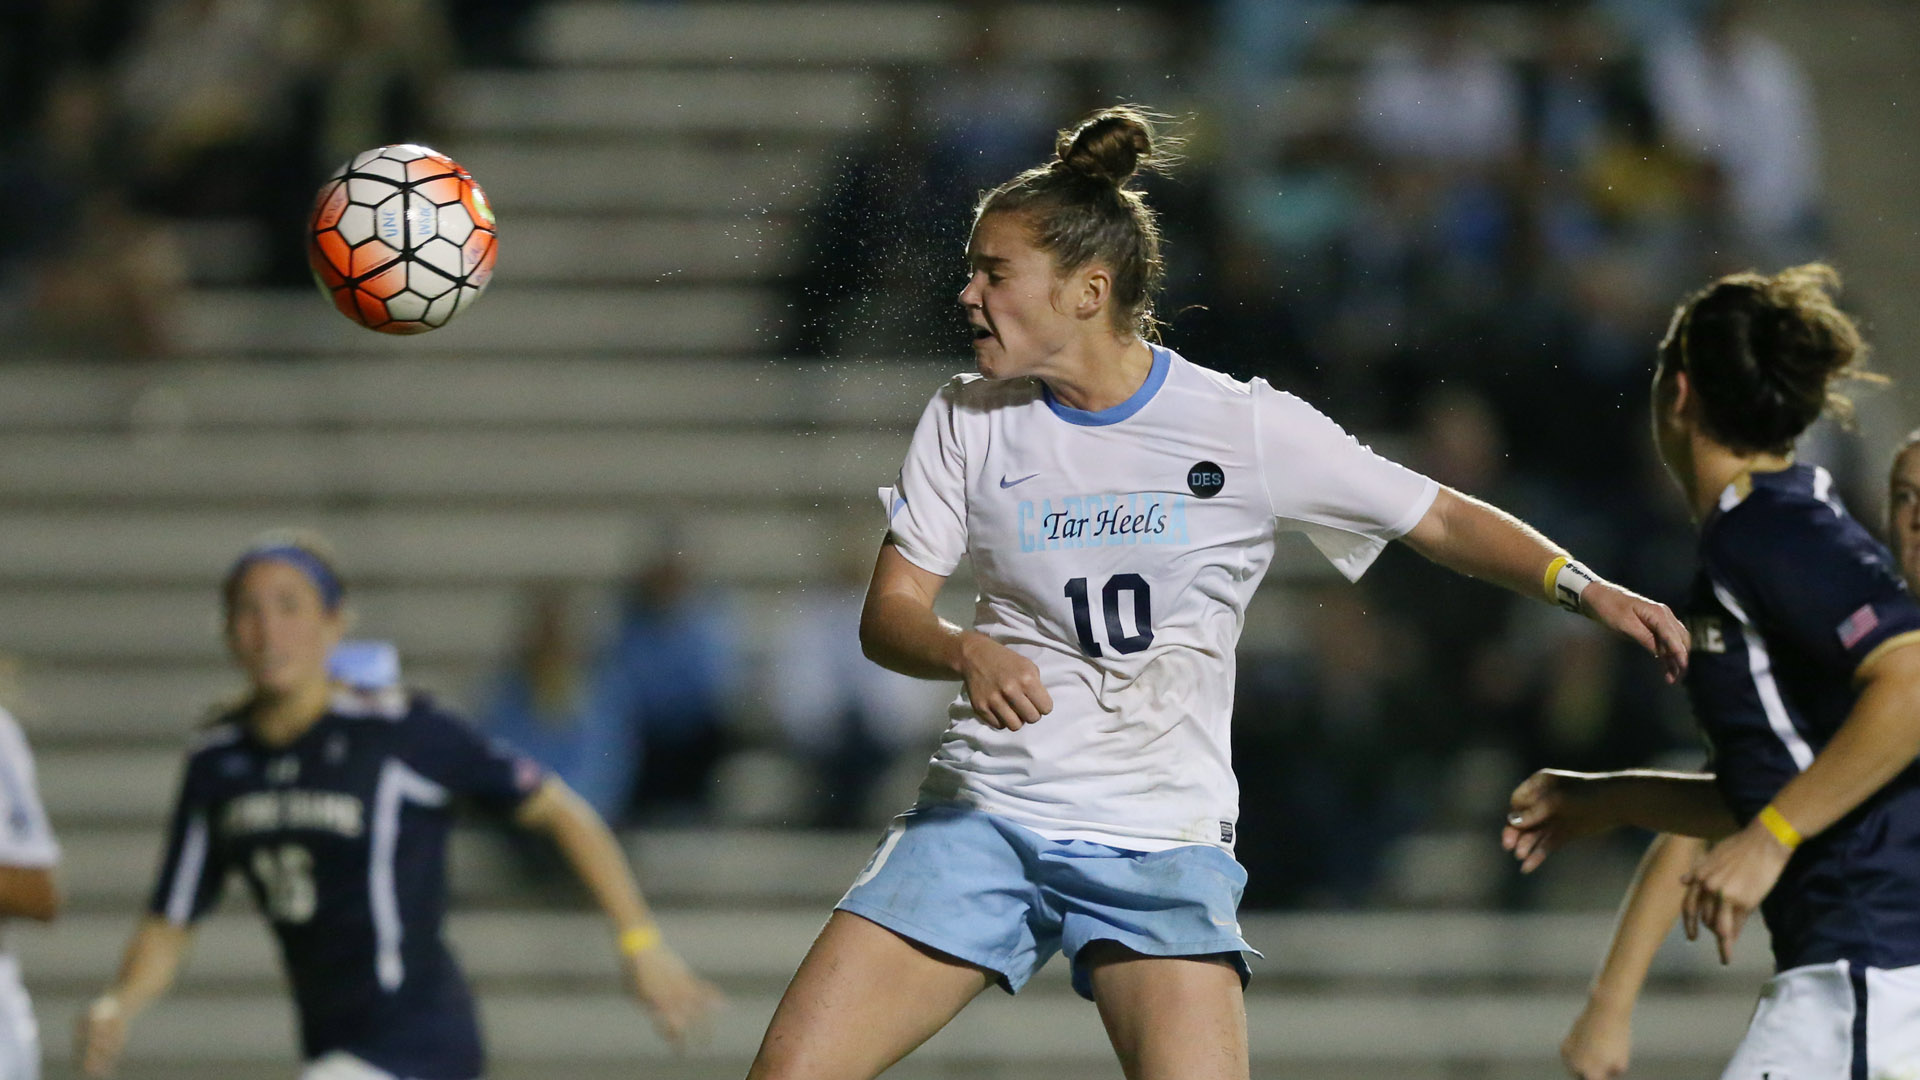 Joanna Boyles (10) heads the ball against Notre Dame, just under three weeks before tearing her ACL in practice.